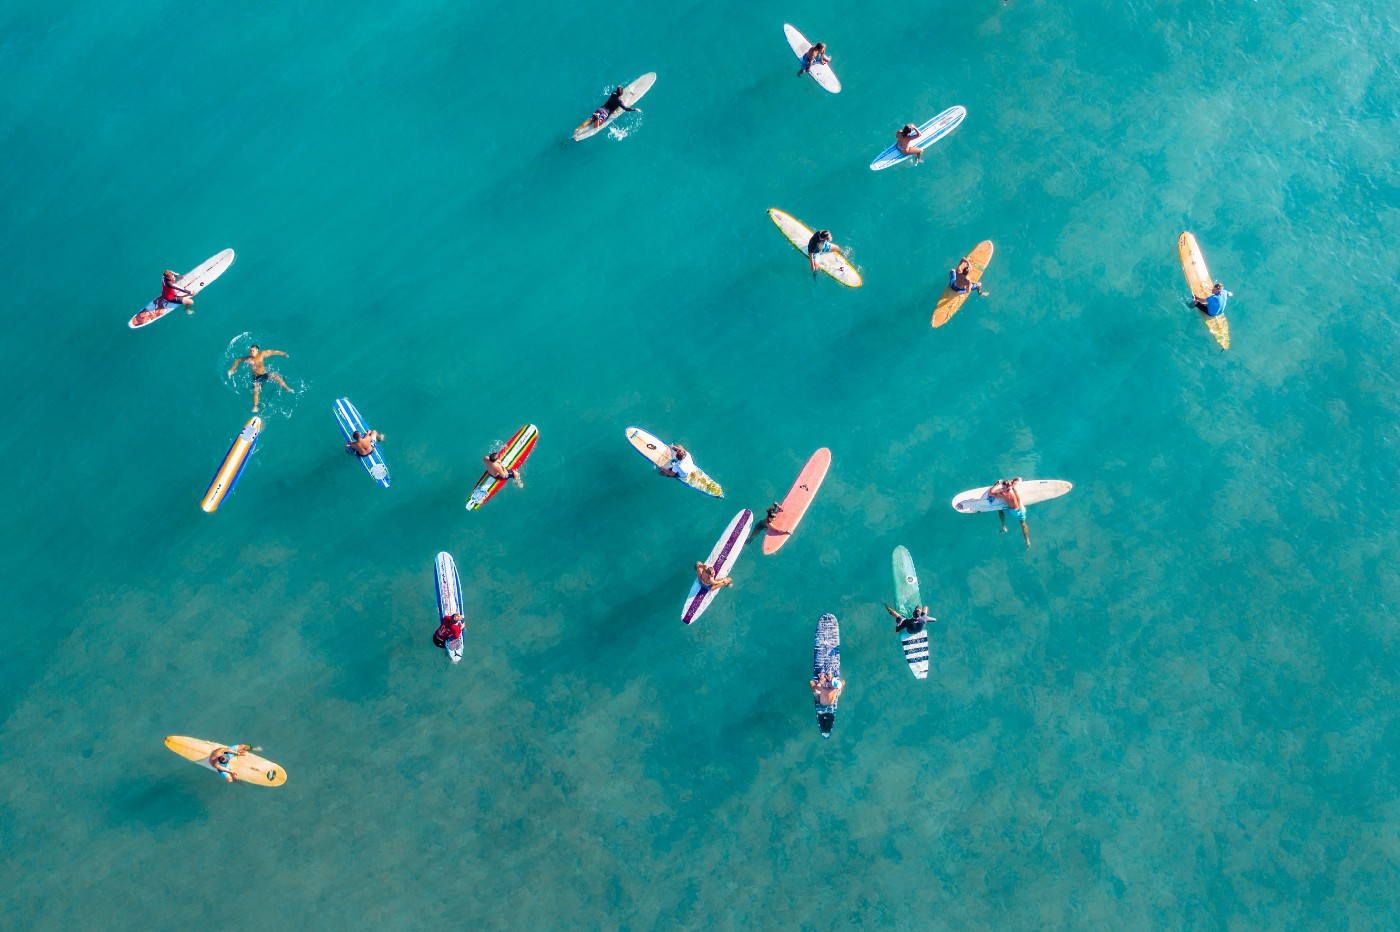 An arial view of surfers floating on a calm blue sea.